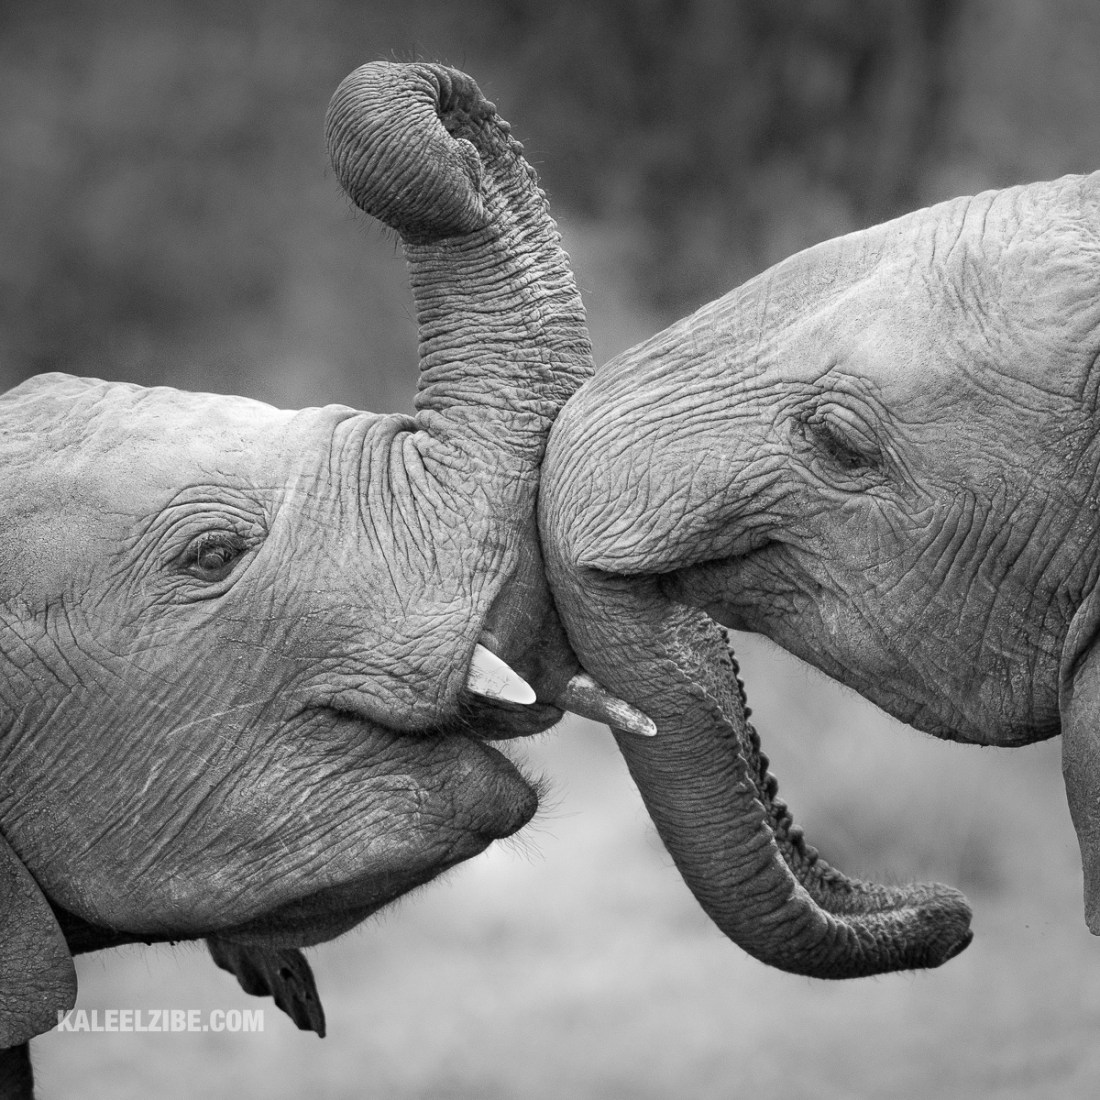 Young elephants play-fighting, Maasai Mara, Africa